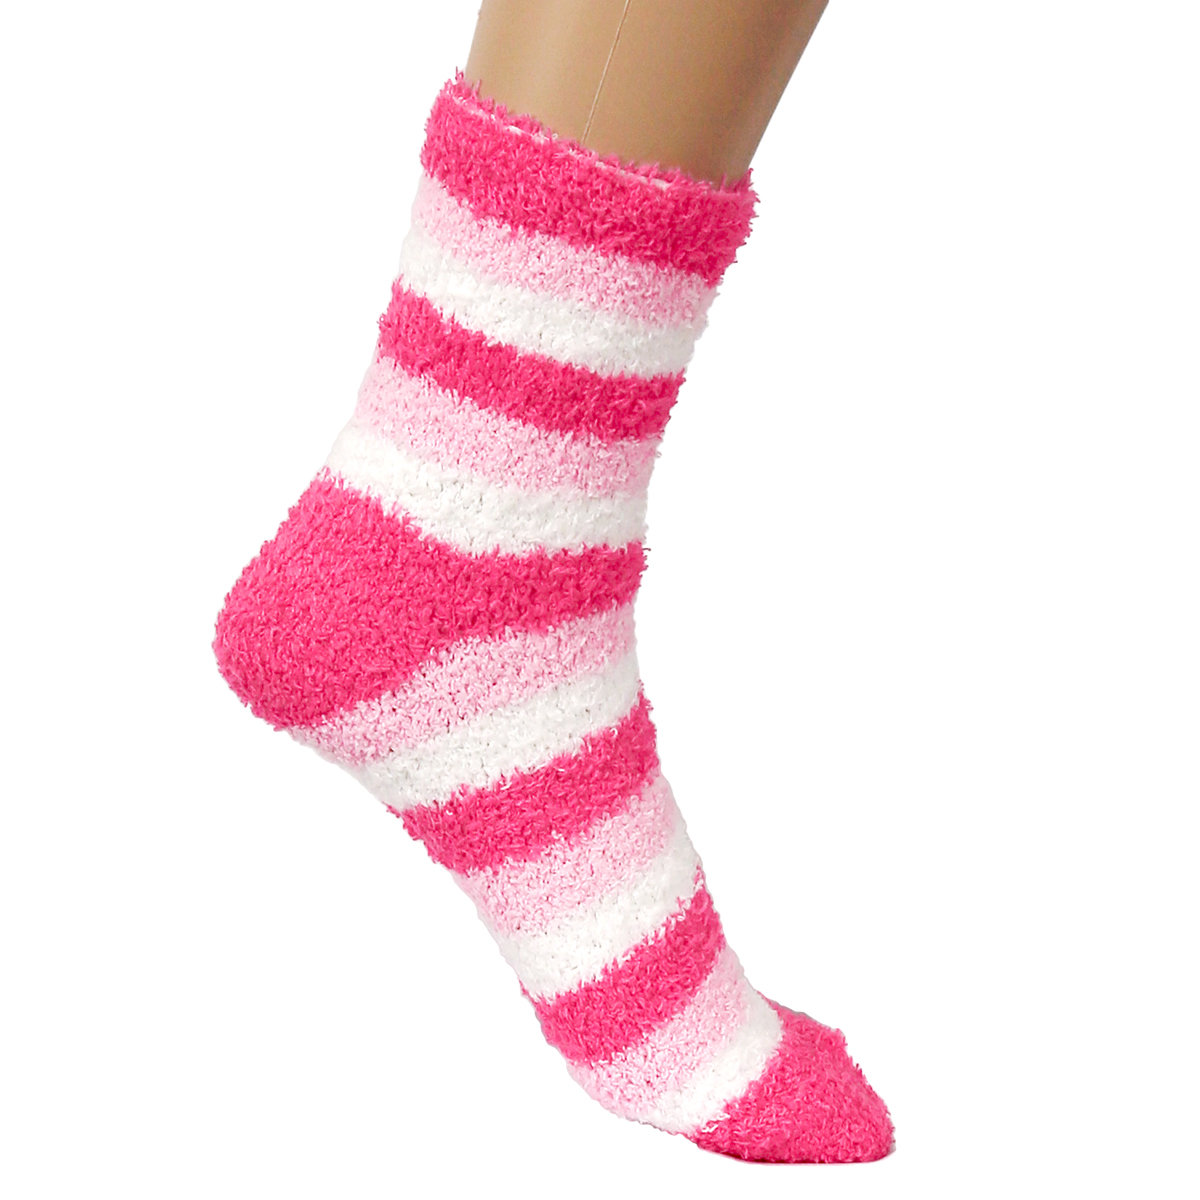 Women's Cozy Fluffy Socks Fuzzy Socks Plush Socks 5,7,8 Pairs. from $ 11 98 Prime. out of 5 stars MIUBEAR. 6 Pack Women Super Soft Warm Microfiber Fuzzy Winter Warm Sleeping Slipper Socks. from $ 11 99 Prime. out of 5 stars Clever Yoga.